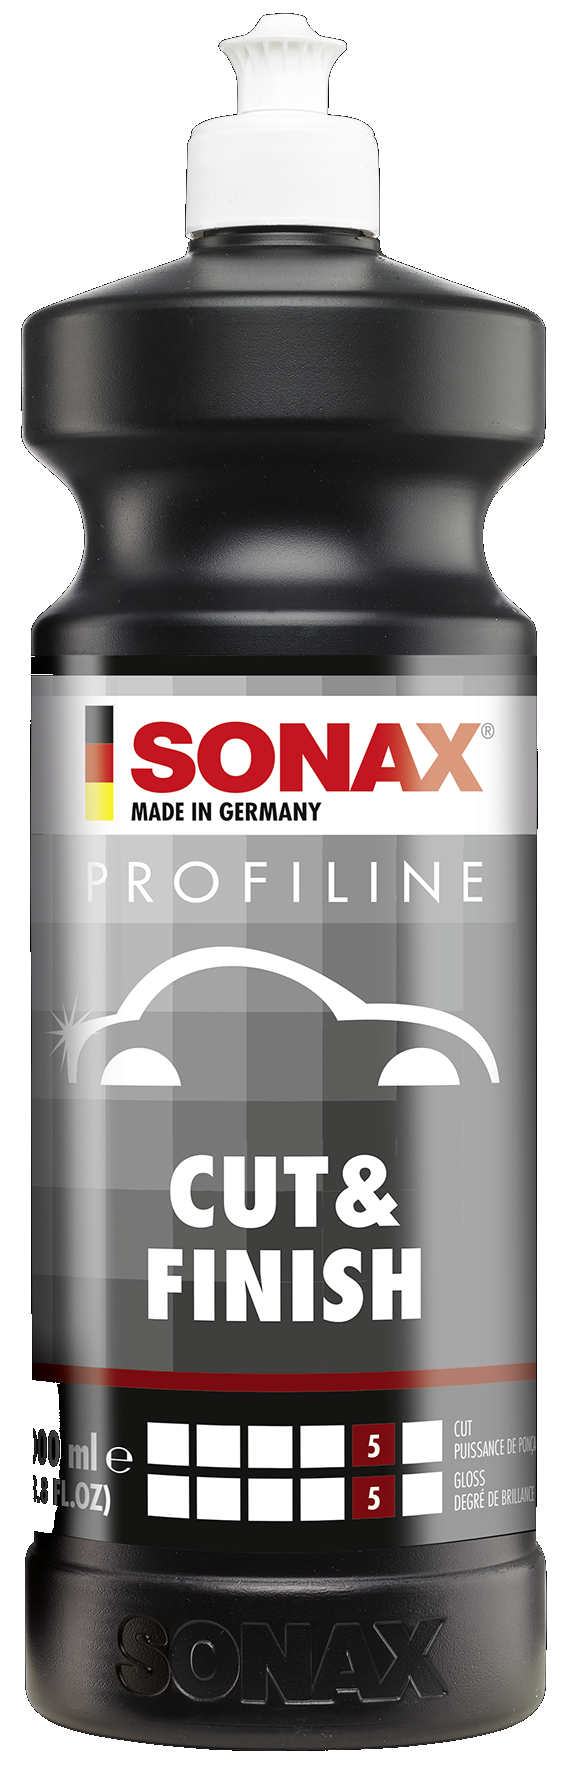 SONAX Profiline Cut & Finish Politur 1L